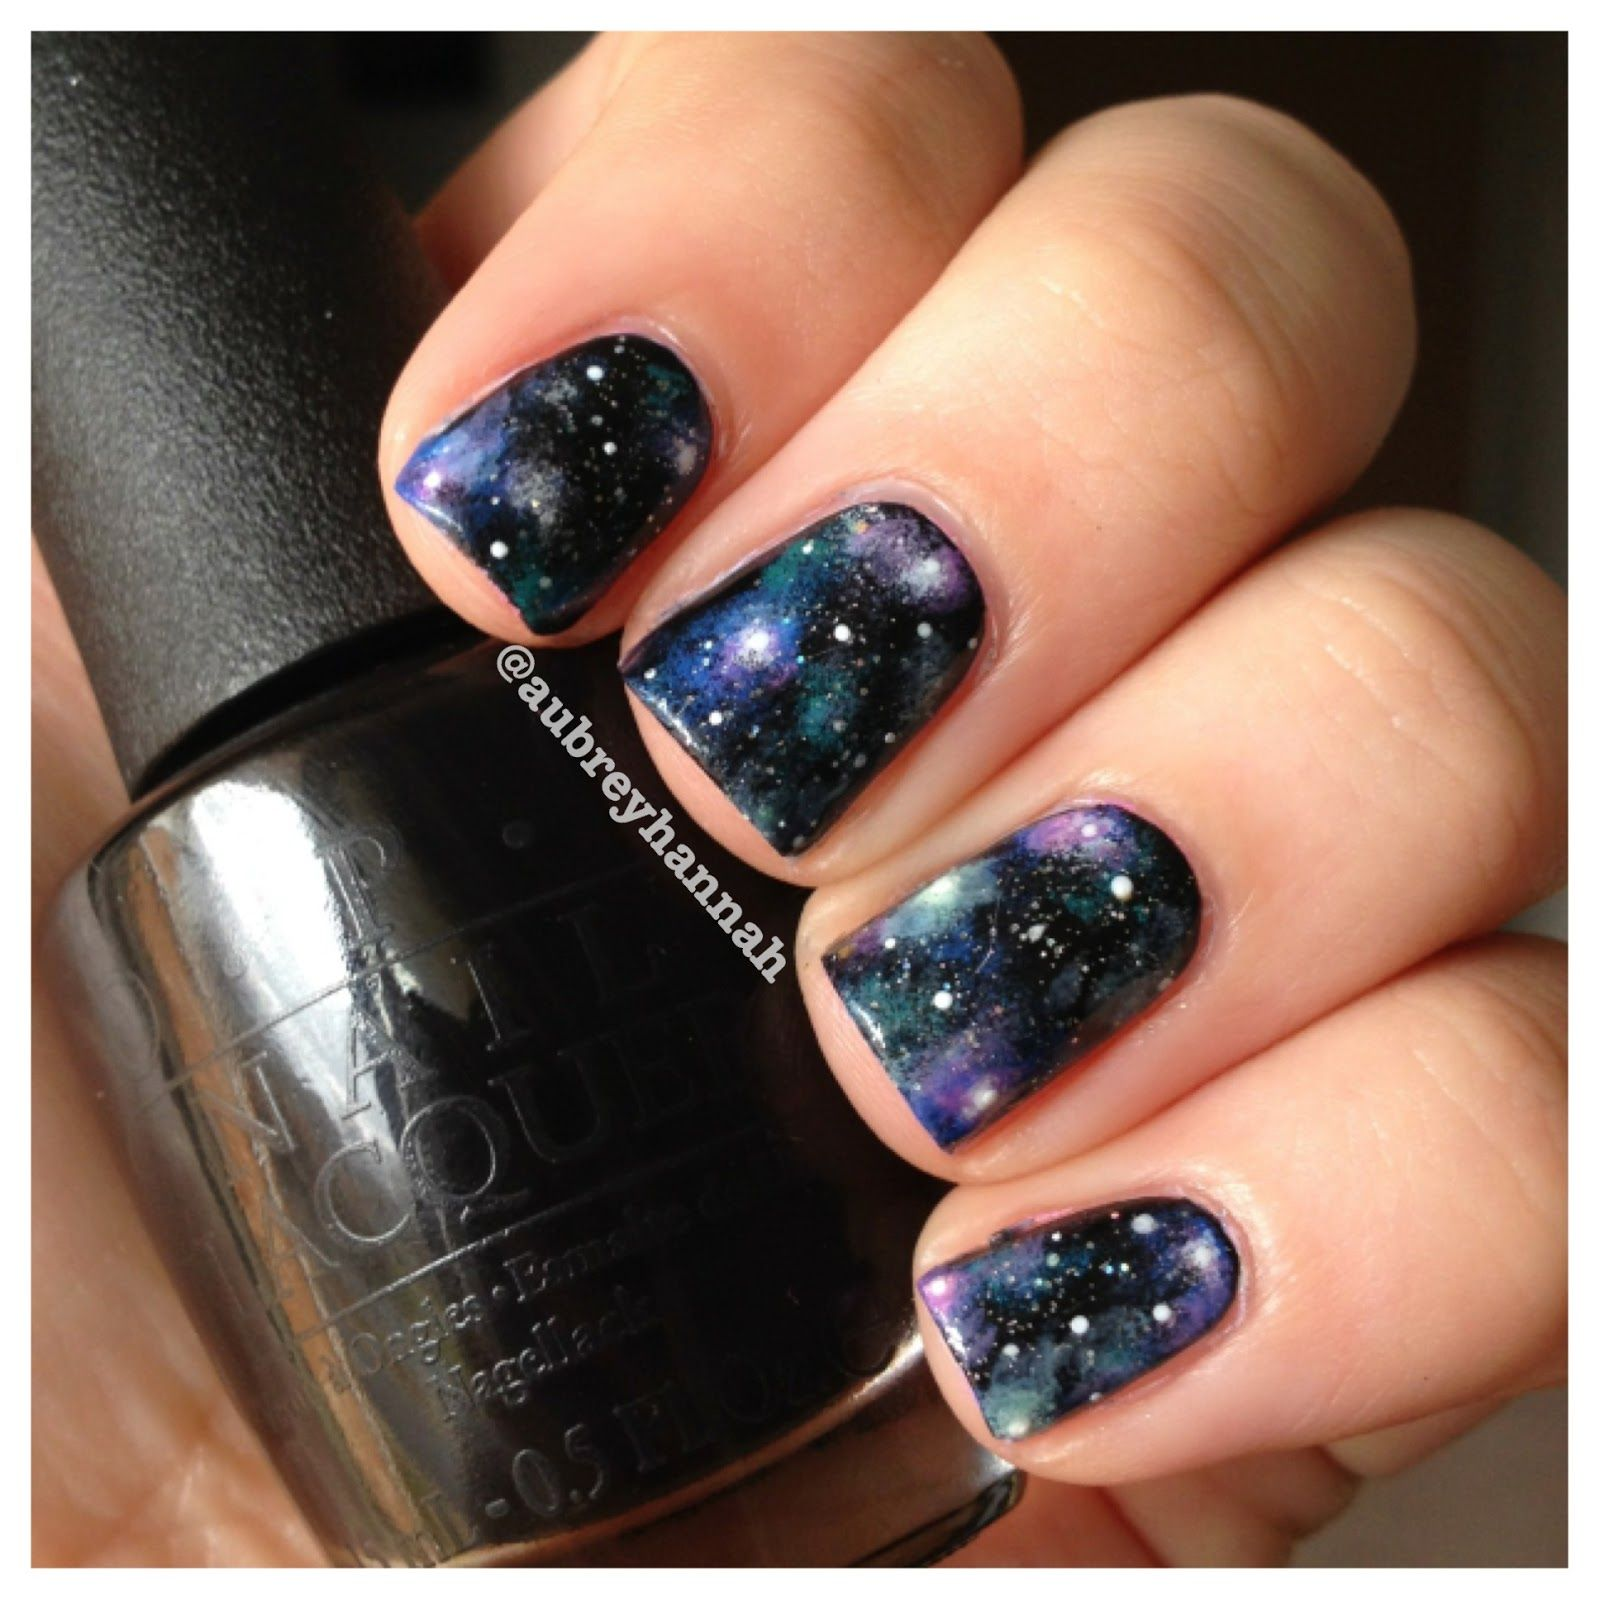 Aubrey hannah galaxy nails tutorial i like her idea of aubrey hannah galaxy nails tutorial super cute if you do them the right way prinsesfo Gallery